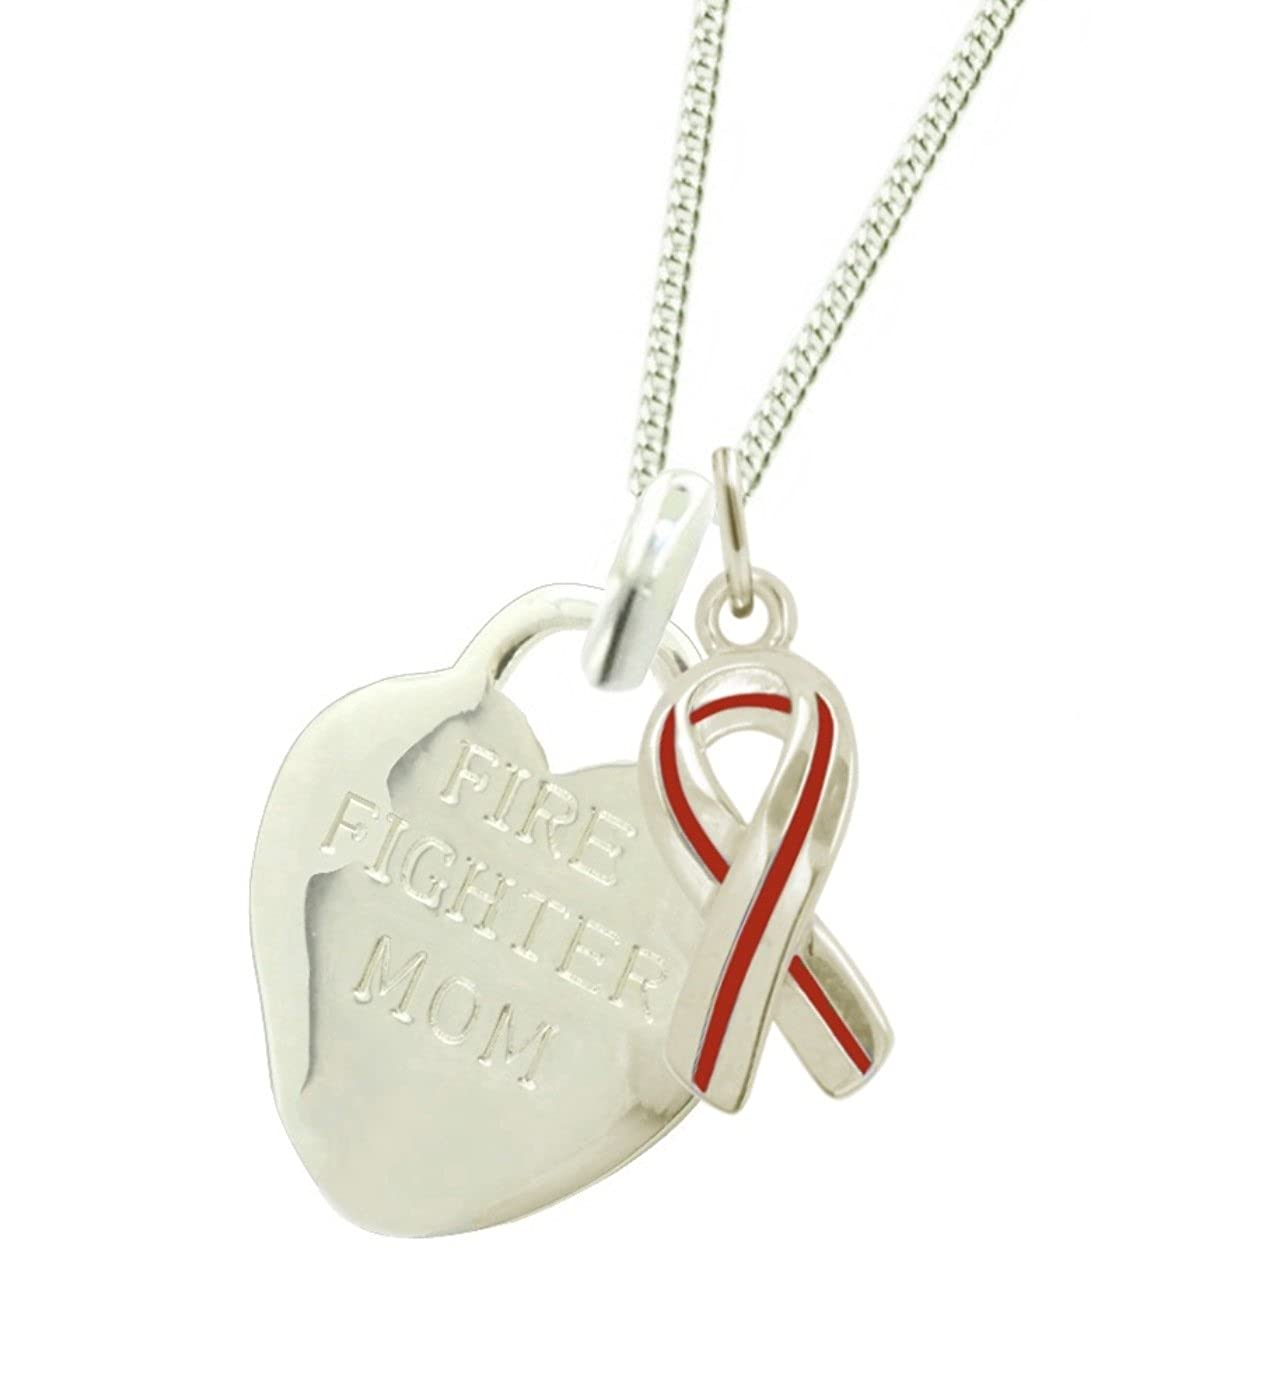 New York 925 /& Co Plated Firefighter Mom Necklace RR